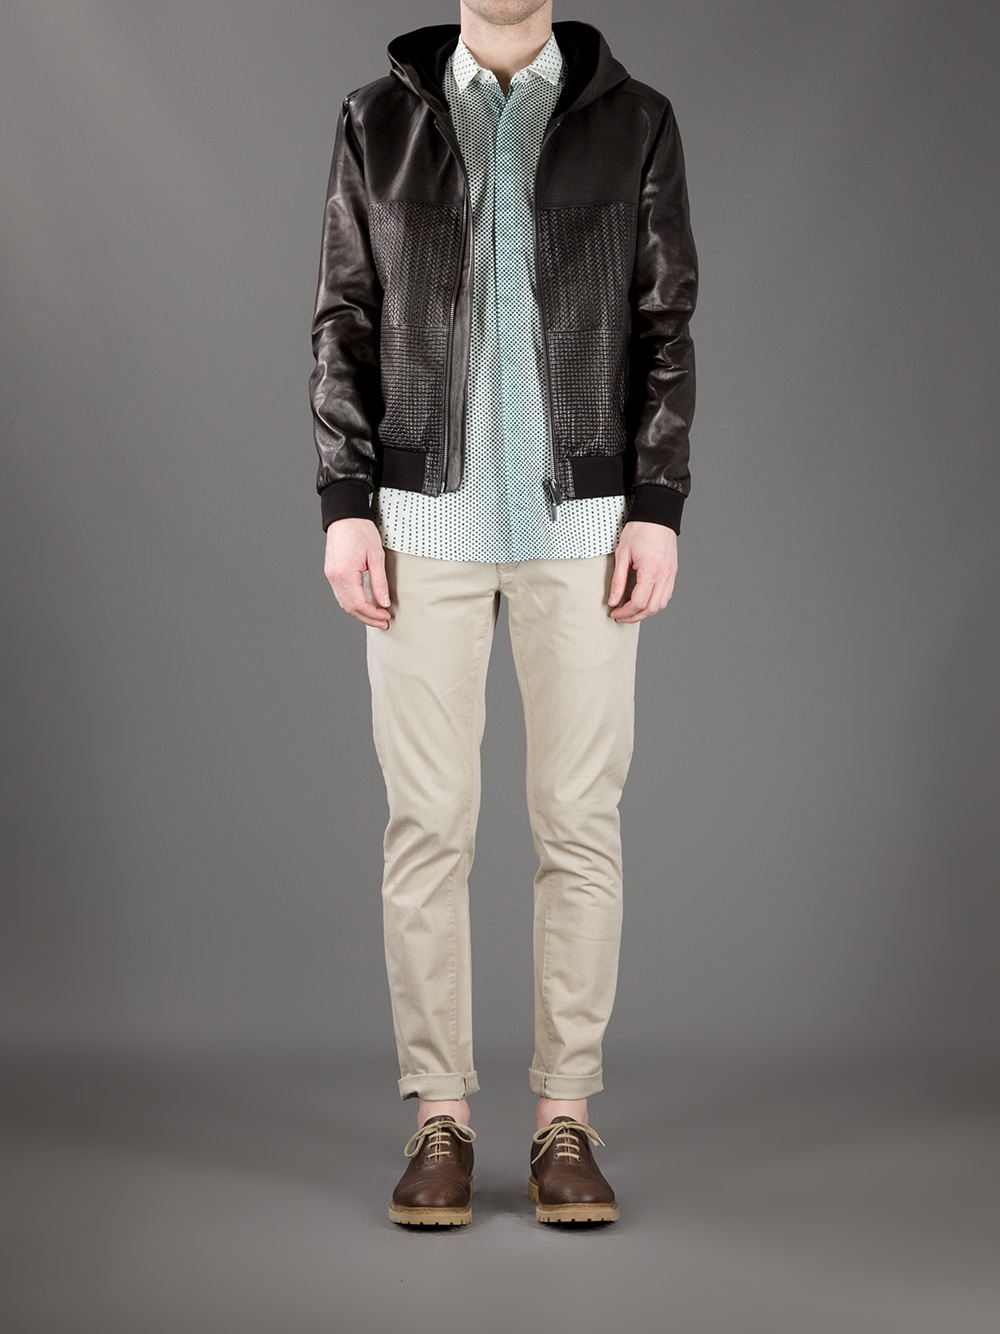 Fendi Woven Leather Jacket in Brown for Men